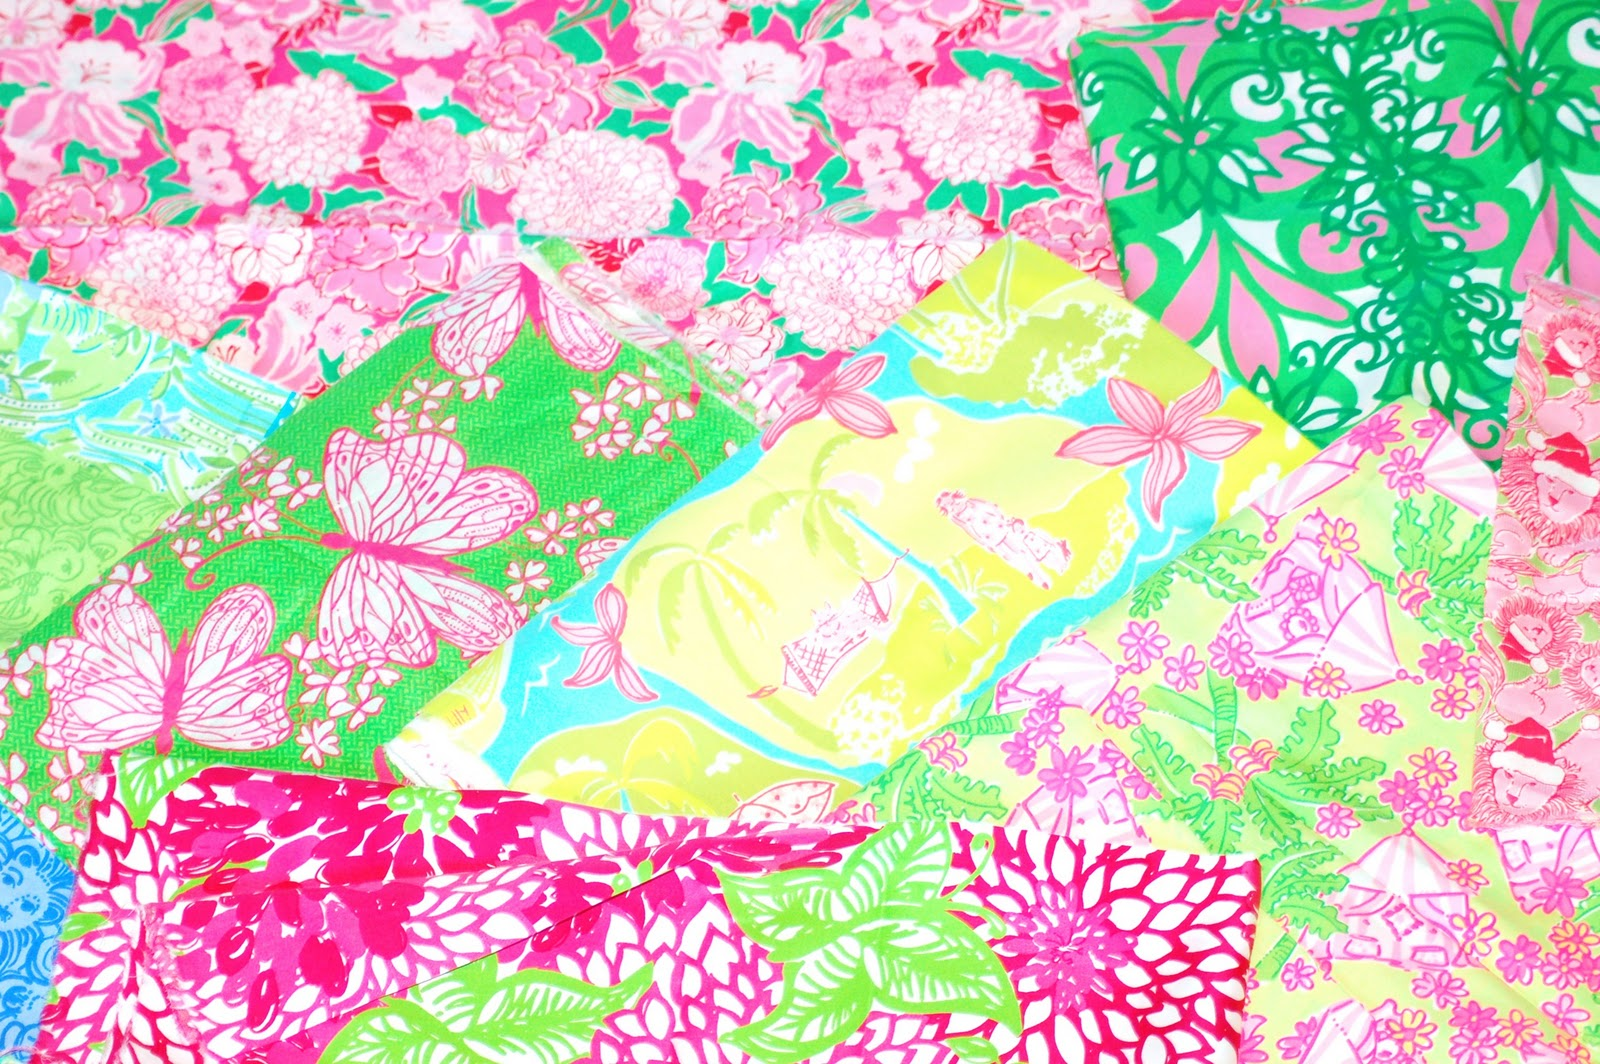 Lilly Pulitzer Quotes Wallpaper Lilly Pulitzer 12543 1600x1064 Px Hdwallsource Com